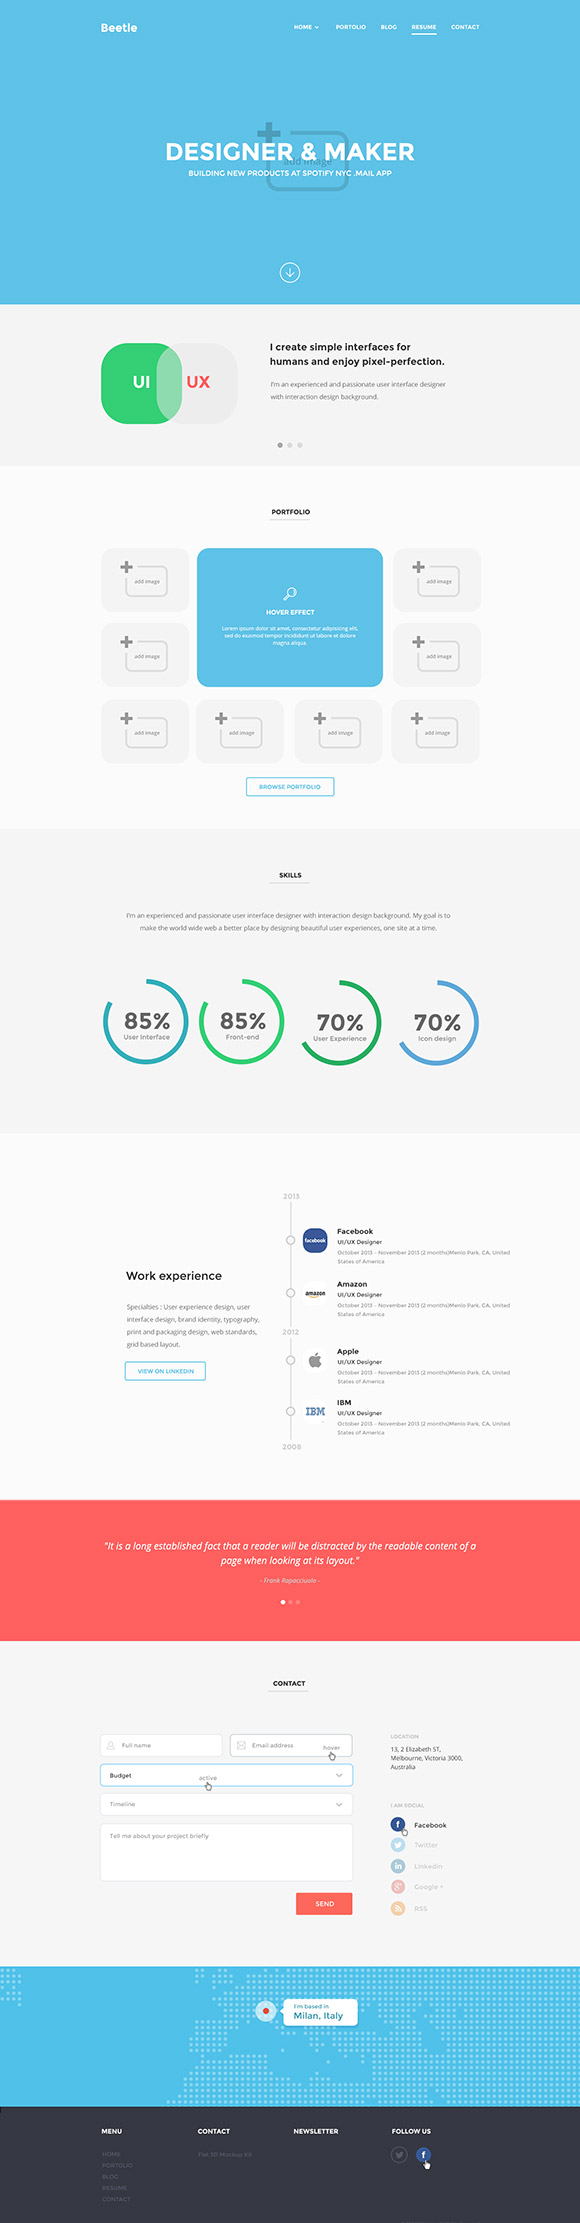 Resume page template PSD detailed view